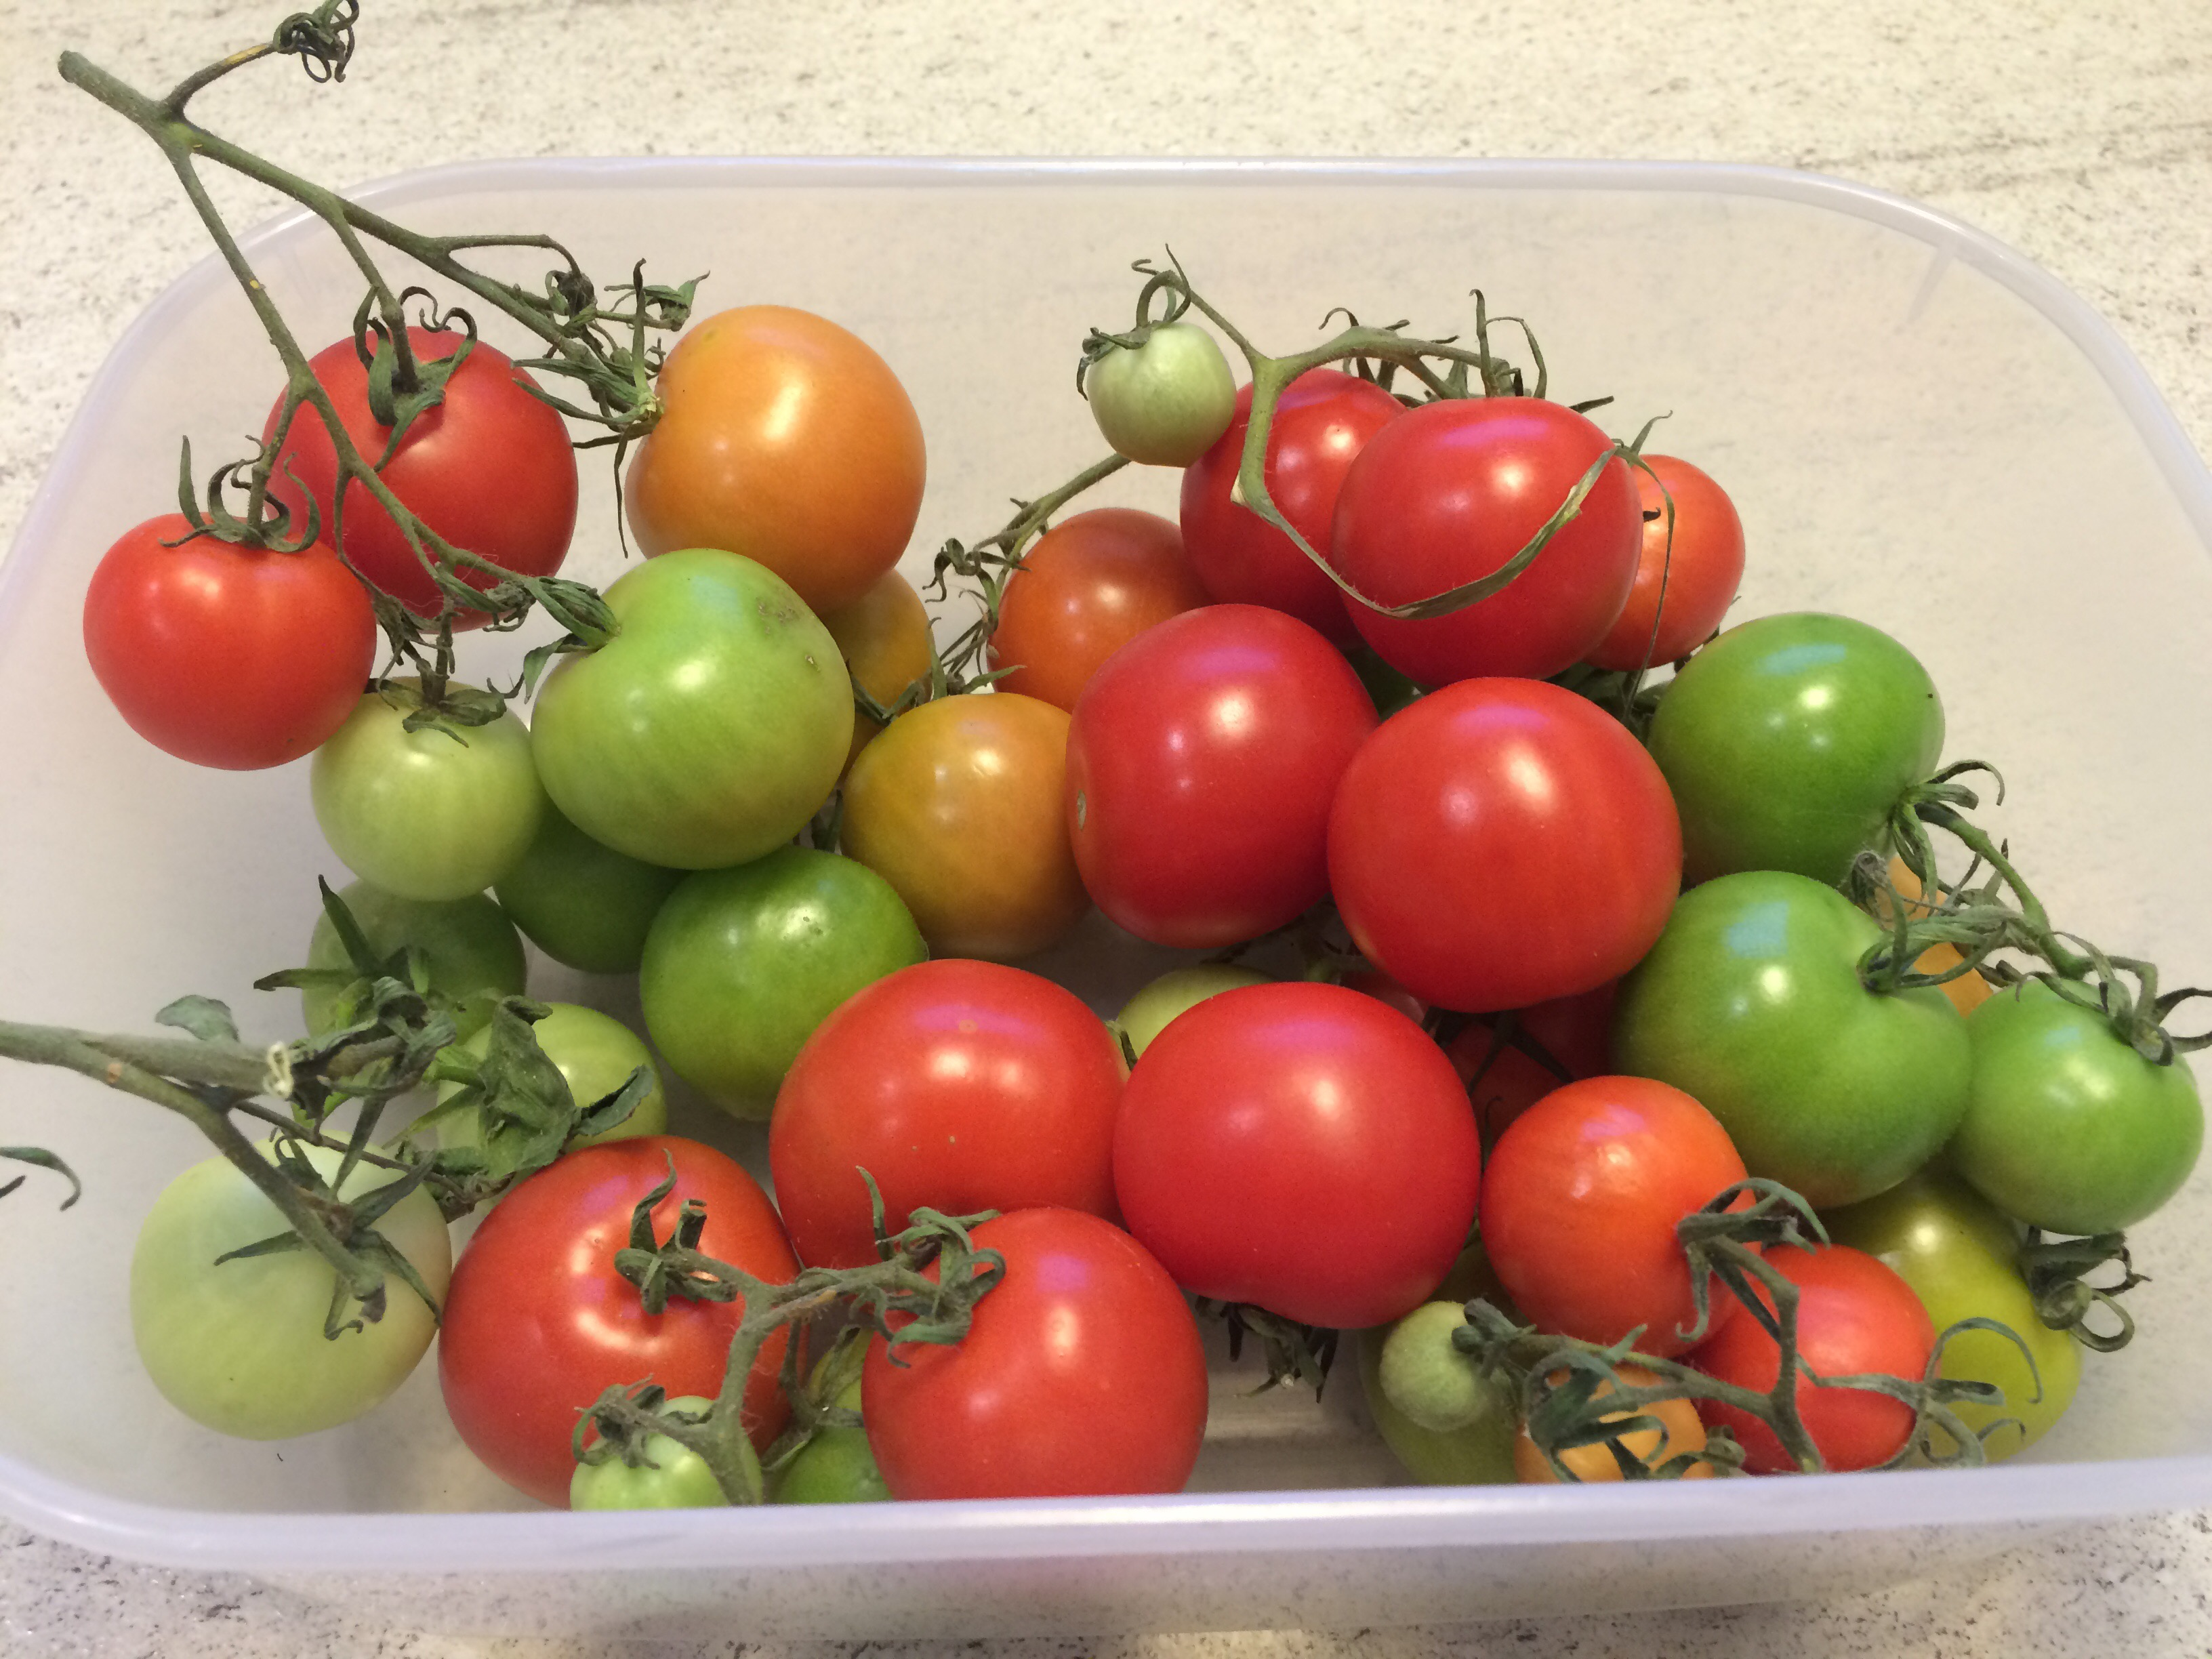 How to cook with green tomatoes